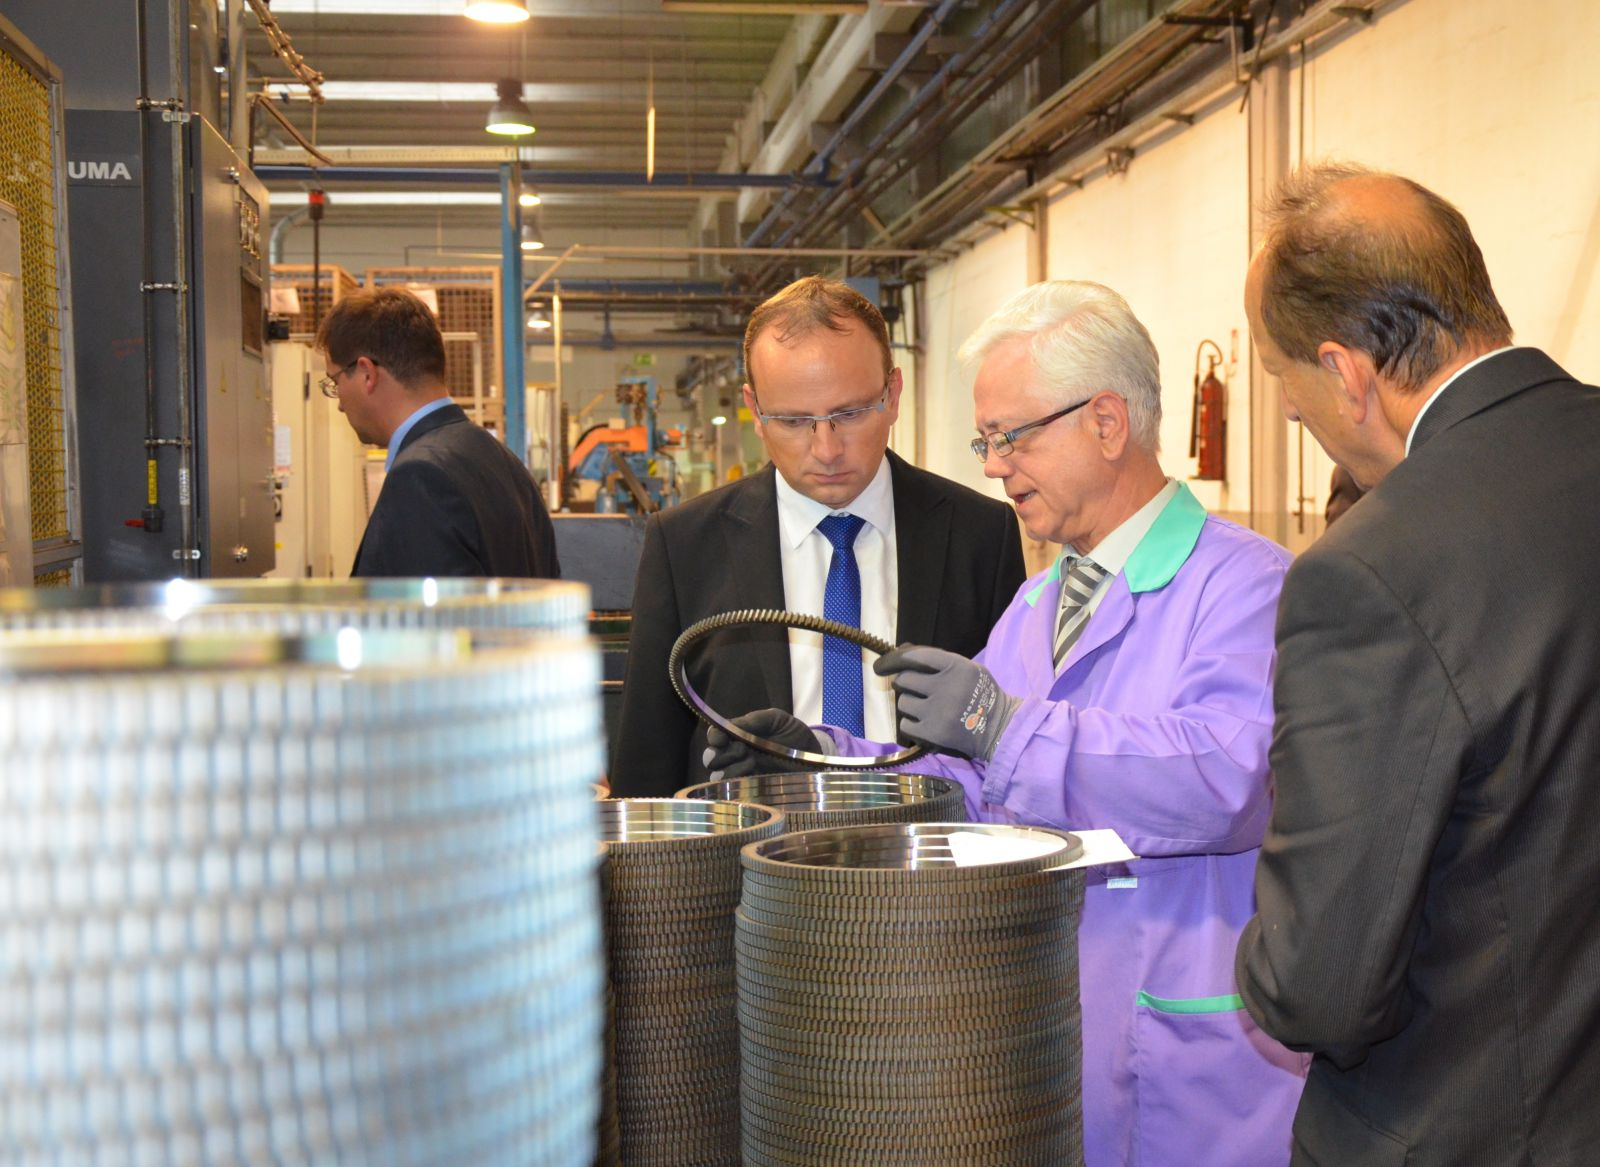 Minister Radovan Žerjav, Msc and Jakob Presečnik, vice-president of the parliament of Republic of Slovenija visiting the production fascility of KLS